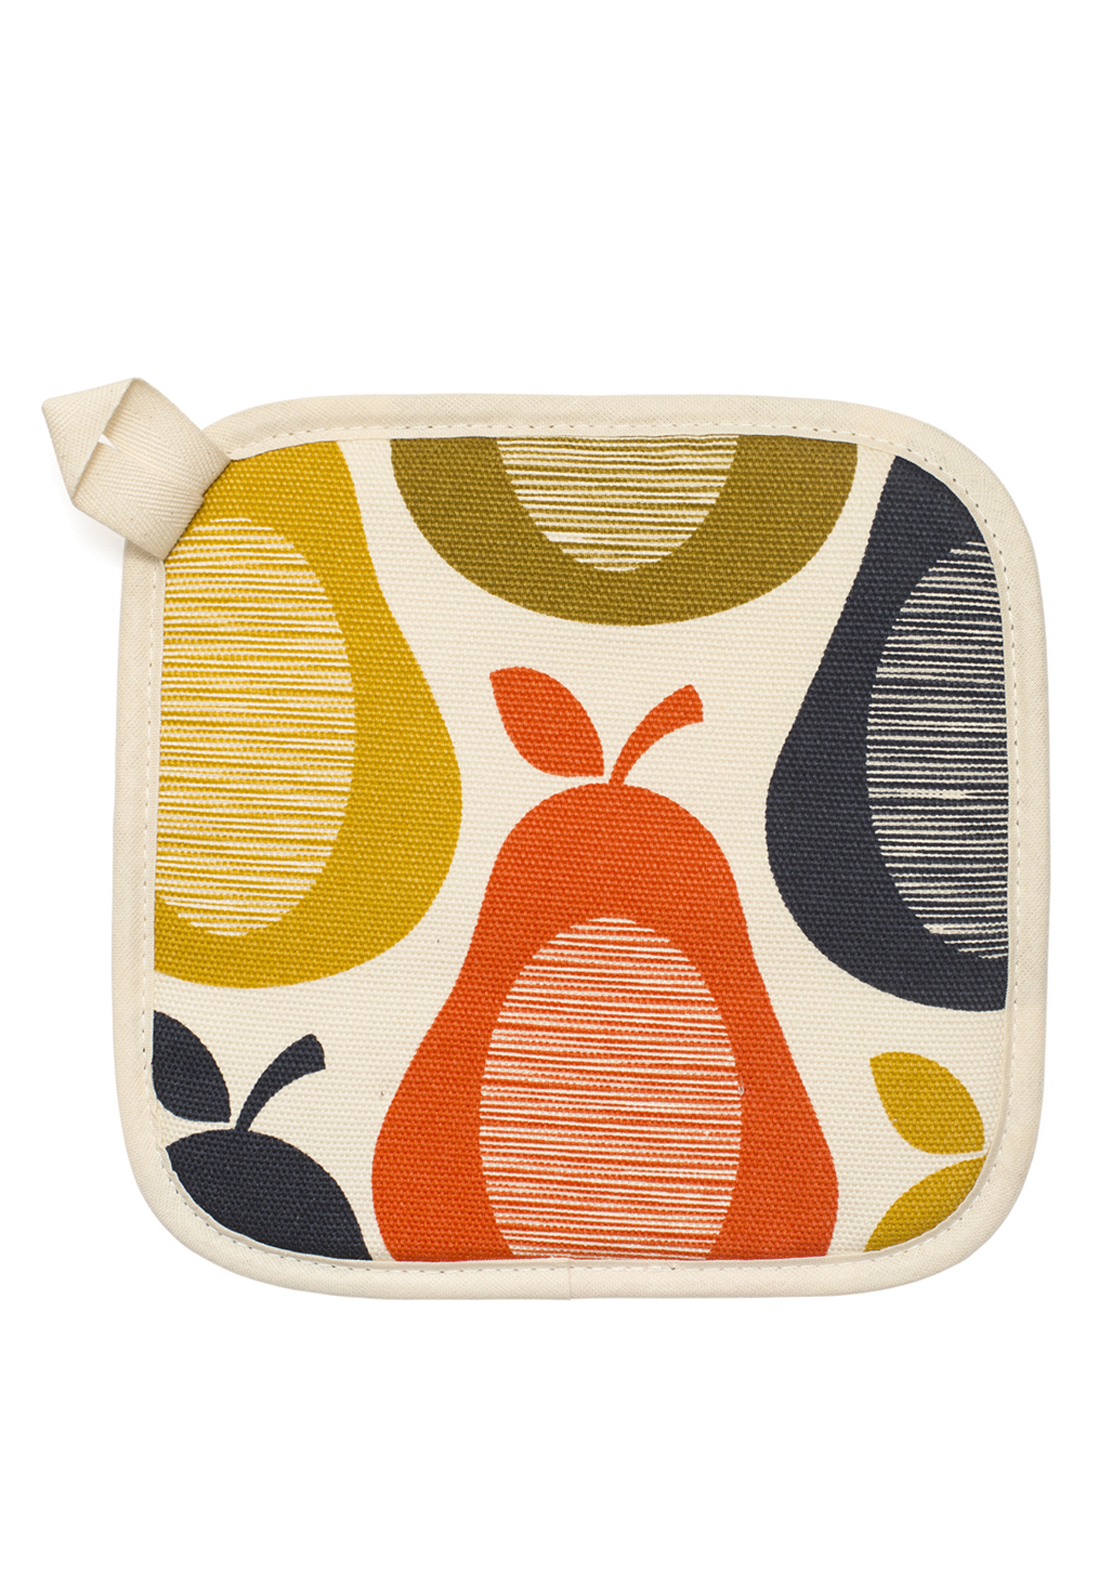 Orla Kiely Pot Grab Oven Mitt Pear Design, Cream Multi